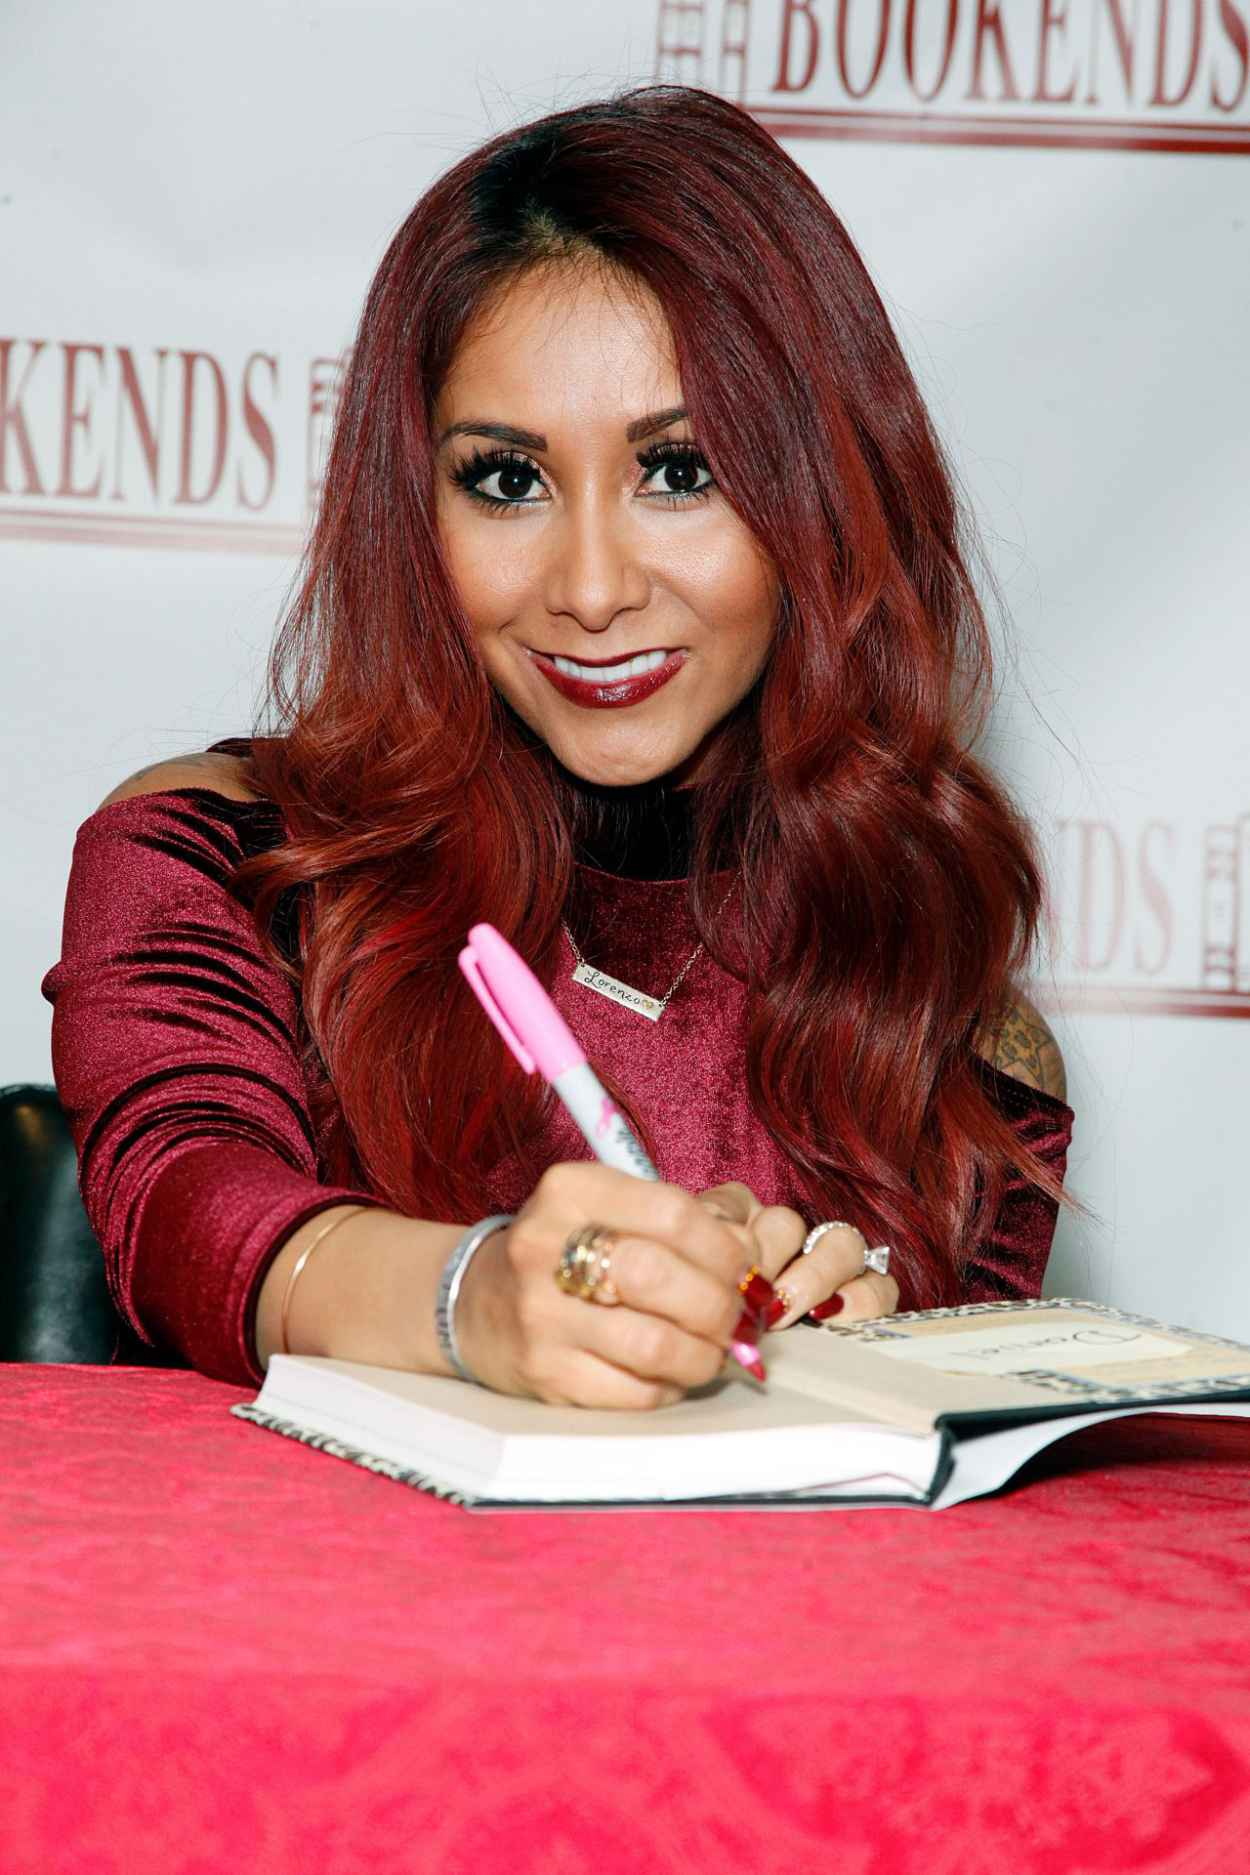 Nicole Polizzi - Signing Copies of Her New Book at Bookends - New Jersey 2015-1